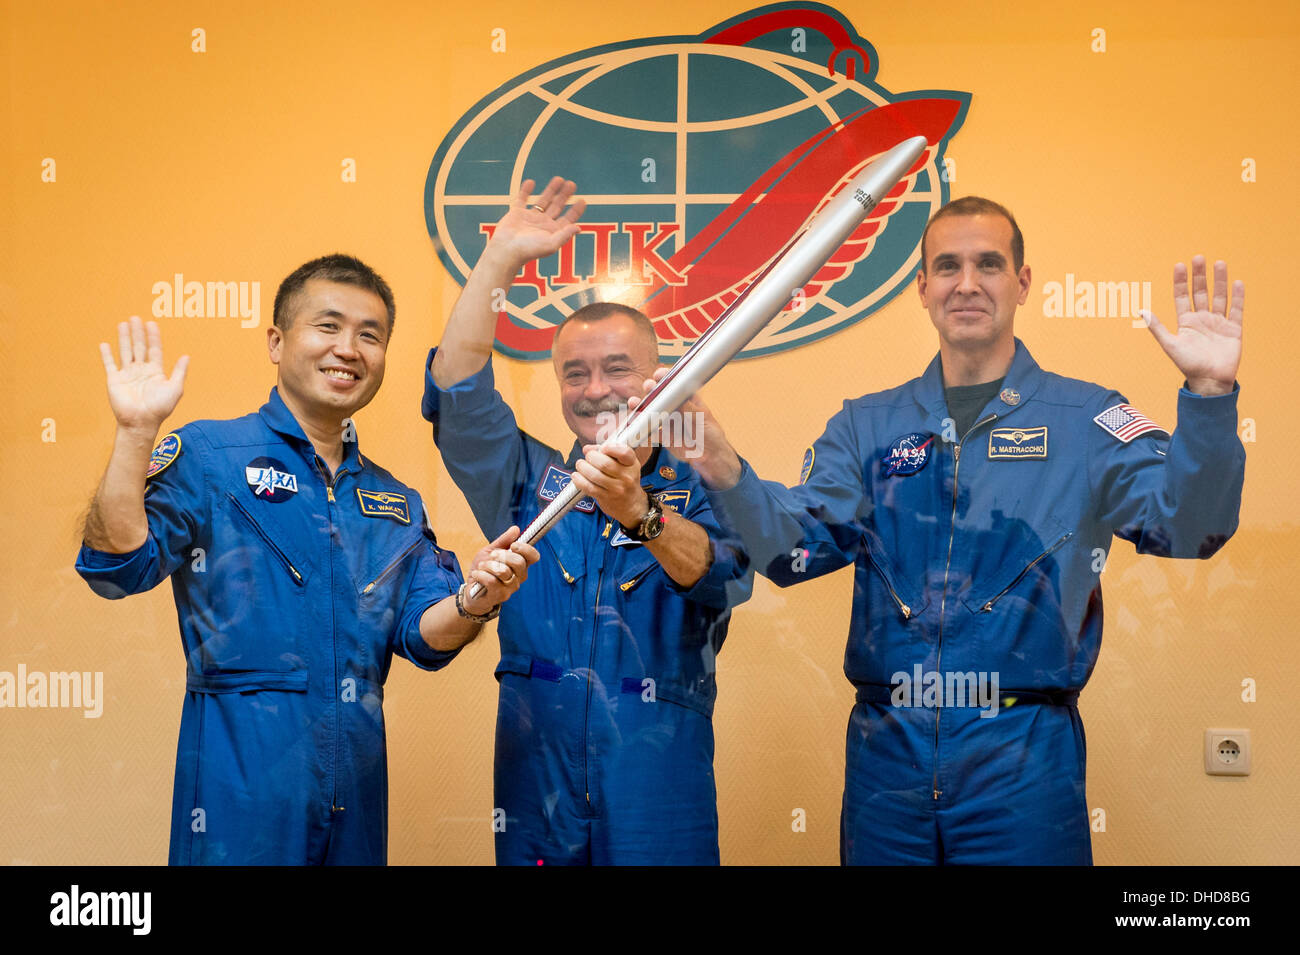 Expedition 38 Flight Engineer Koichi Wakata of the Japan Aerospace Exploration Agency, left, Soyuz Commander Mikhail Tyurin of Roscosmos, and, Flight Engineer Rick Mastracchio of NASA, right, smile and was as they hold an Olympic torch that will be flown with them to the International Space Station, during a press conference held at the Cosmonaut hotel in Baikonur, Kazakhstan on 6 November 2013. Launch of the Soyuz rocket is scheduled for November 7 and will send Tyurin, Mastracchio, Wakata on a six-month mission aboard the International Space Station. Mandatory Credit: Bill Ingalls / NASA v - Stock Image